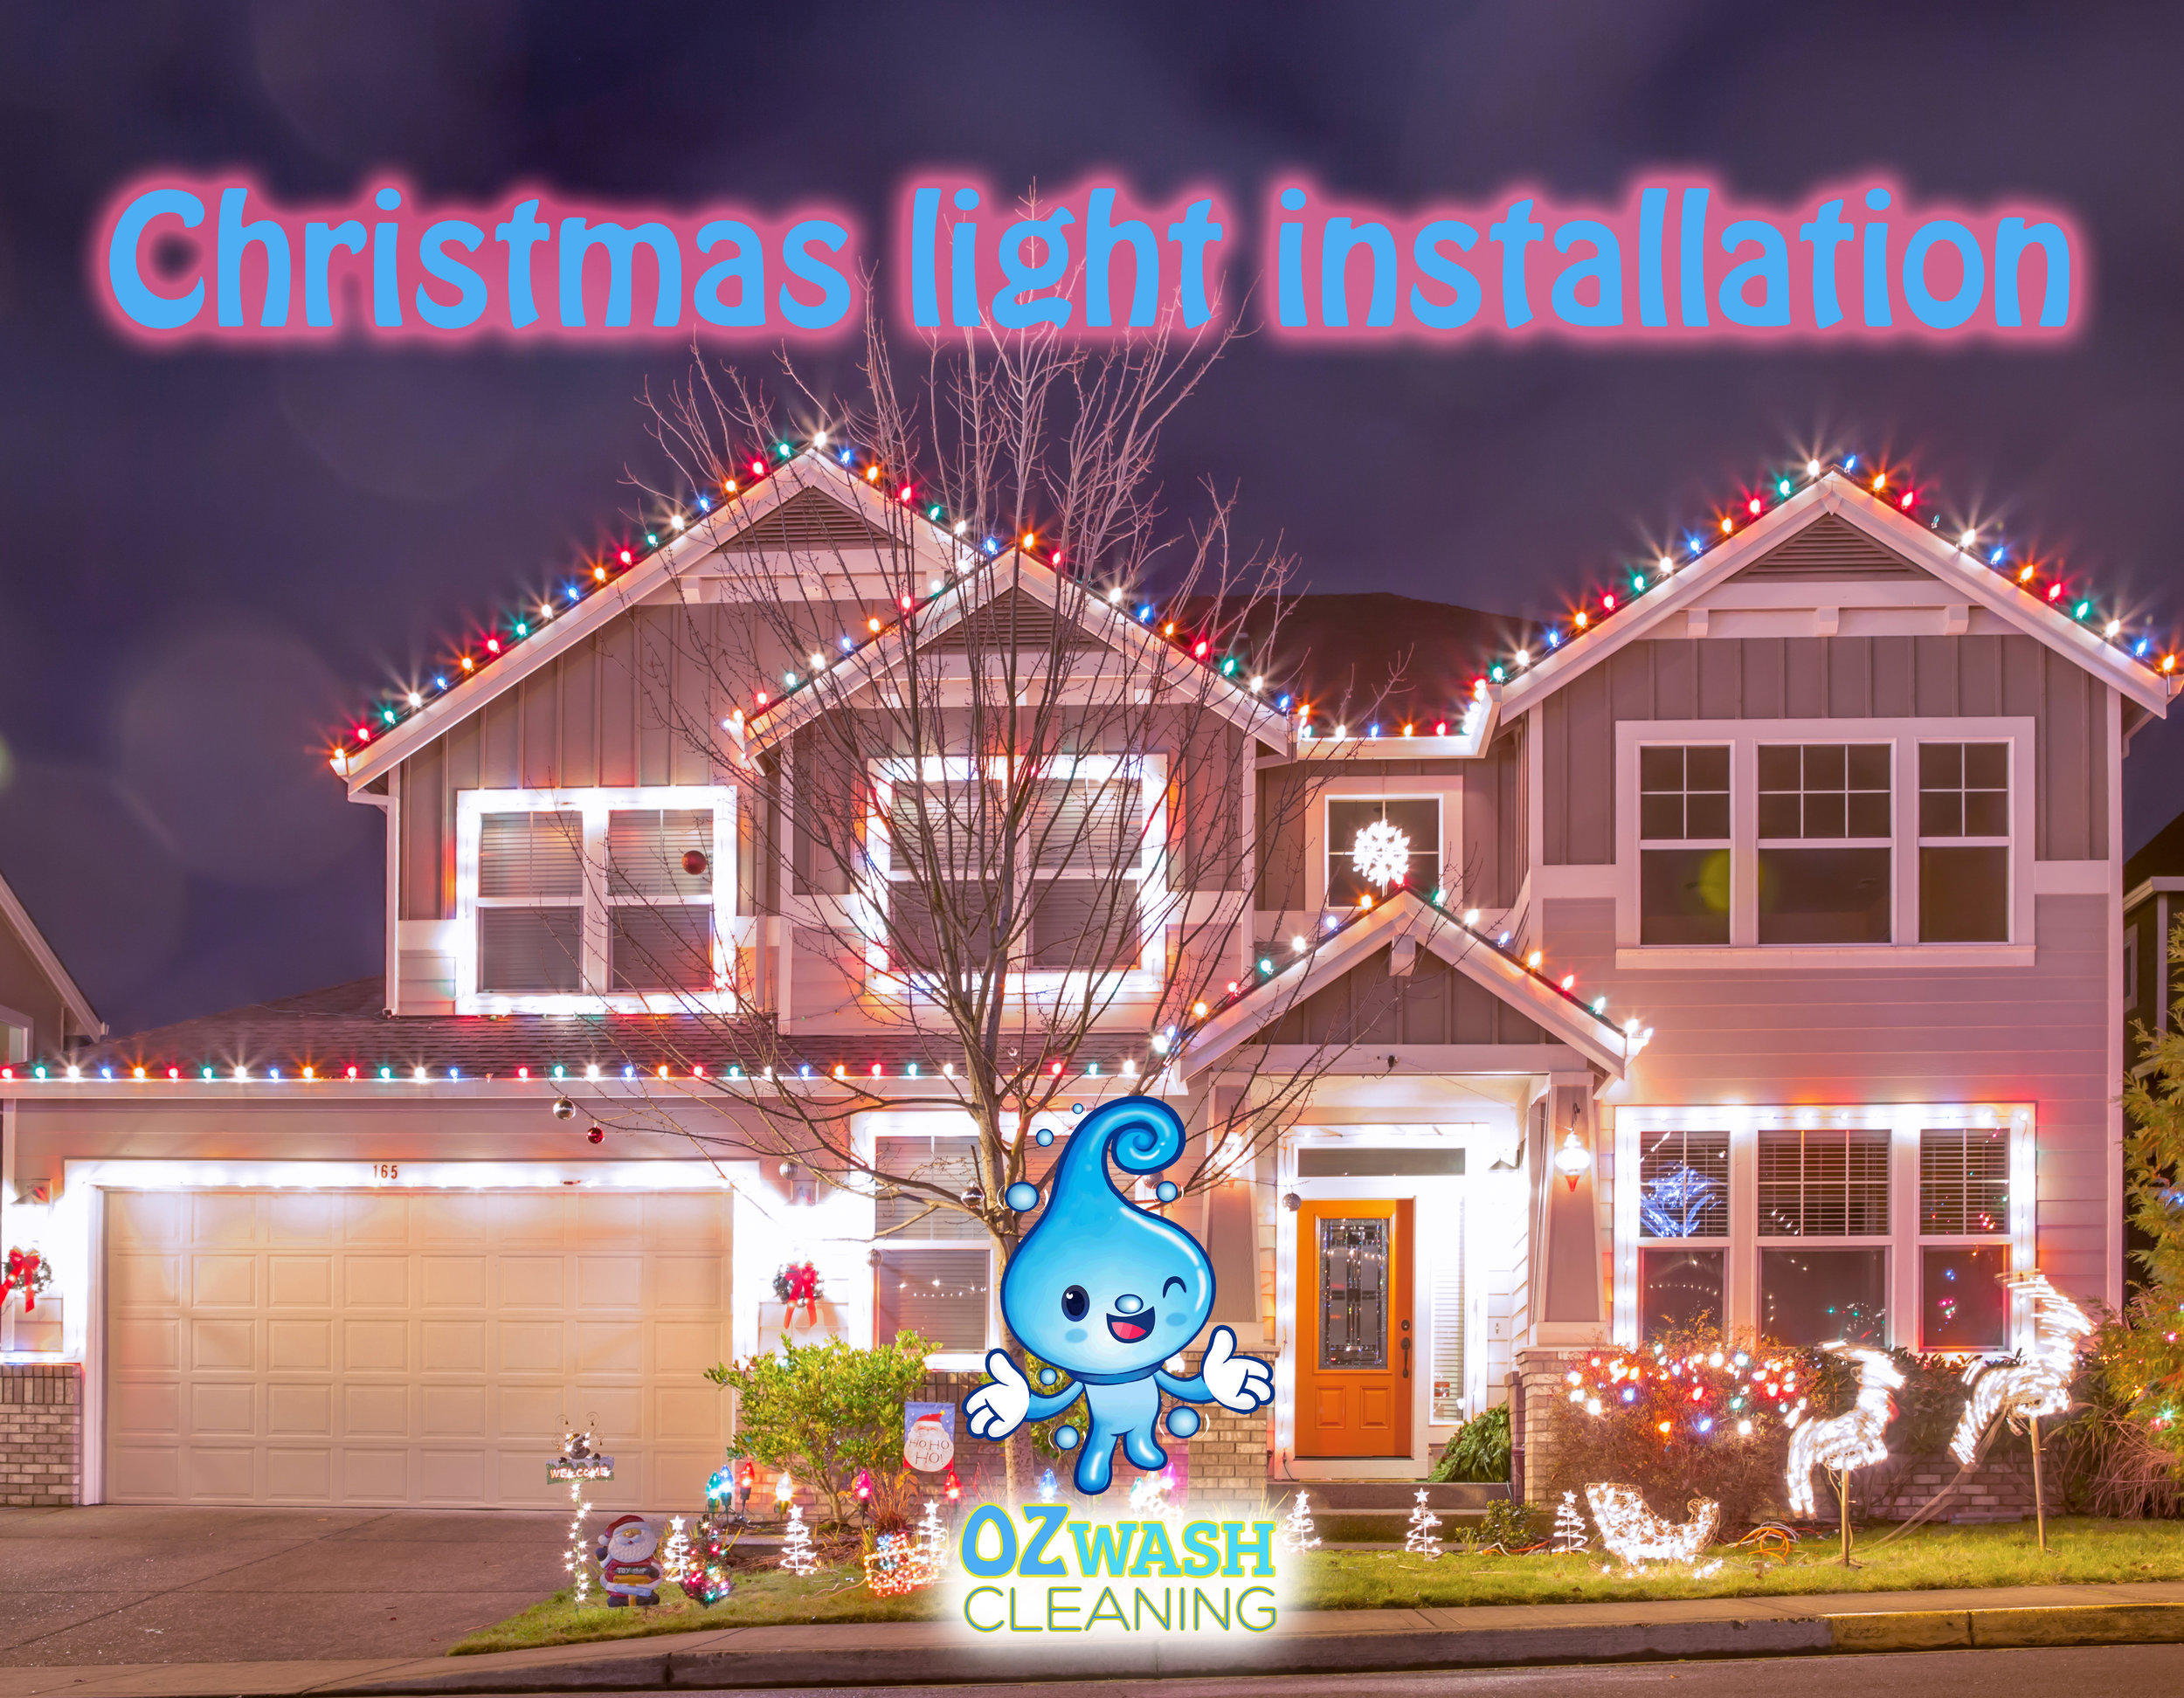 Christmas Light Installation2.jpg